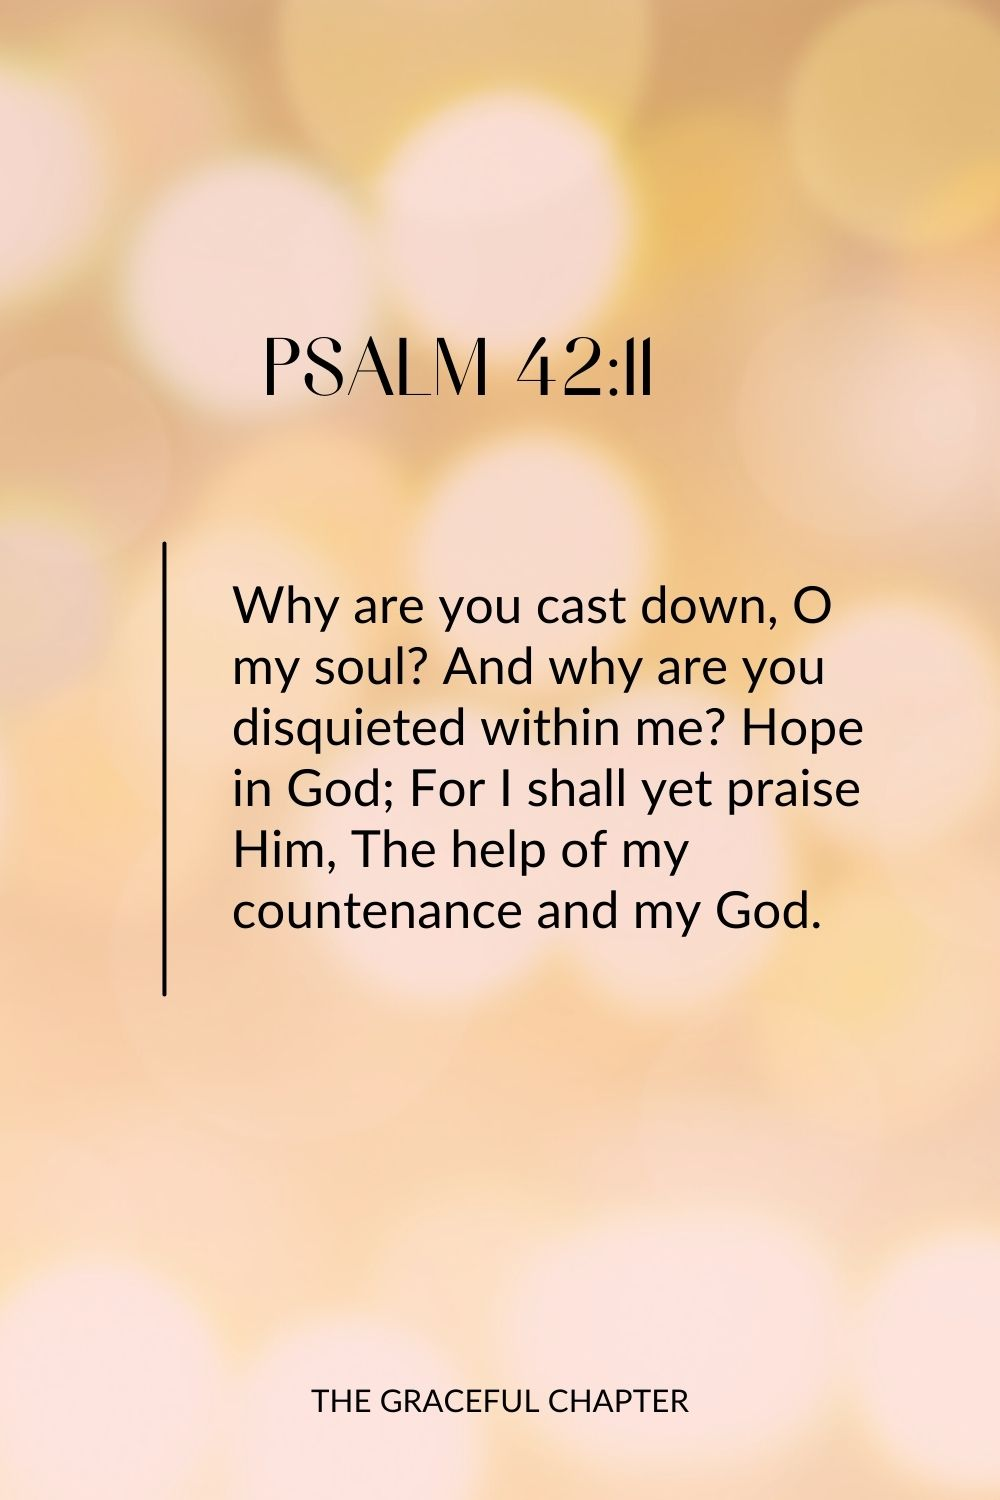 Why are you cast down, O my soul? And why are you disquieted within me? Hope in God; For I shall yet praise Him, The help of my countenance and my God. Psalm 42:11